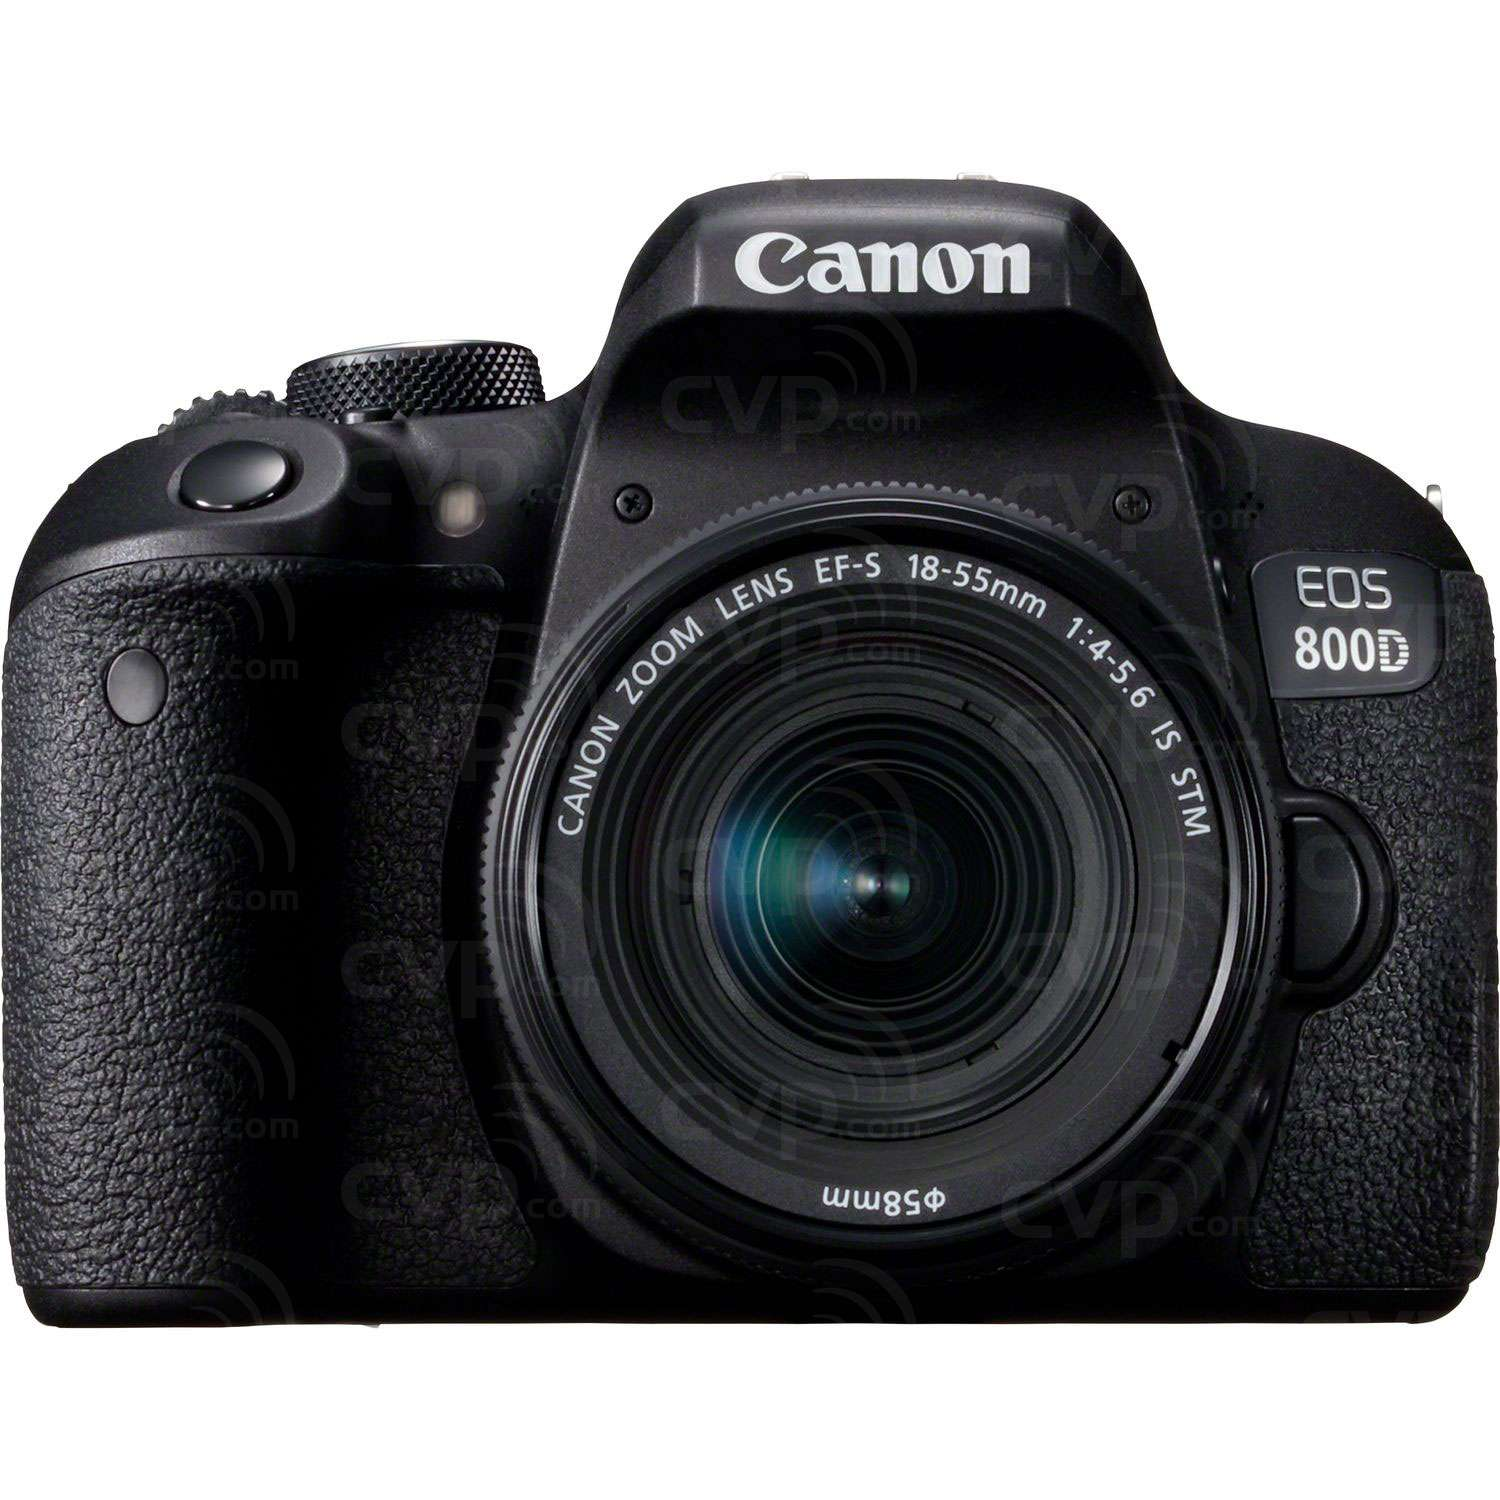 Buy Canon Eos 800d 24 2 Megapixel Full Hd Digital Slr